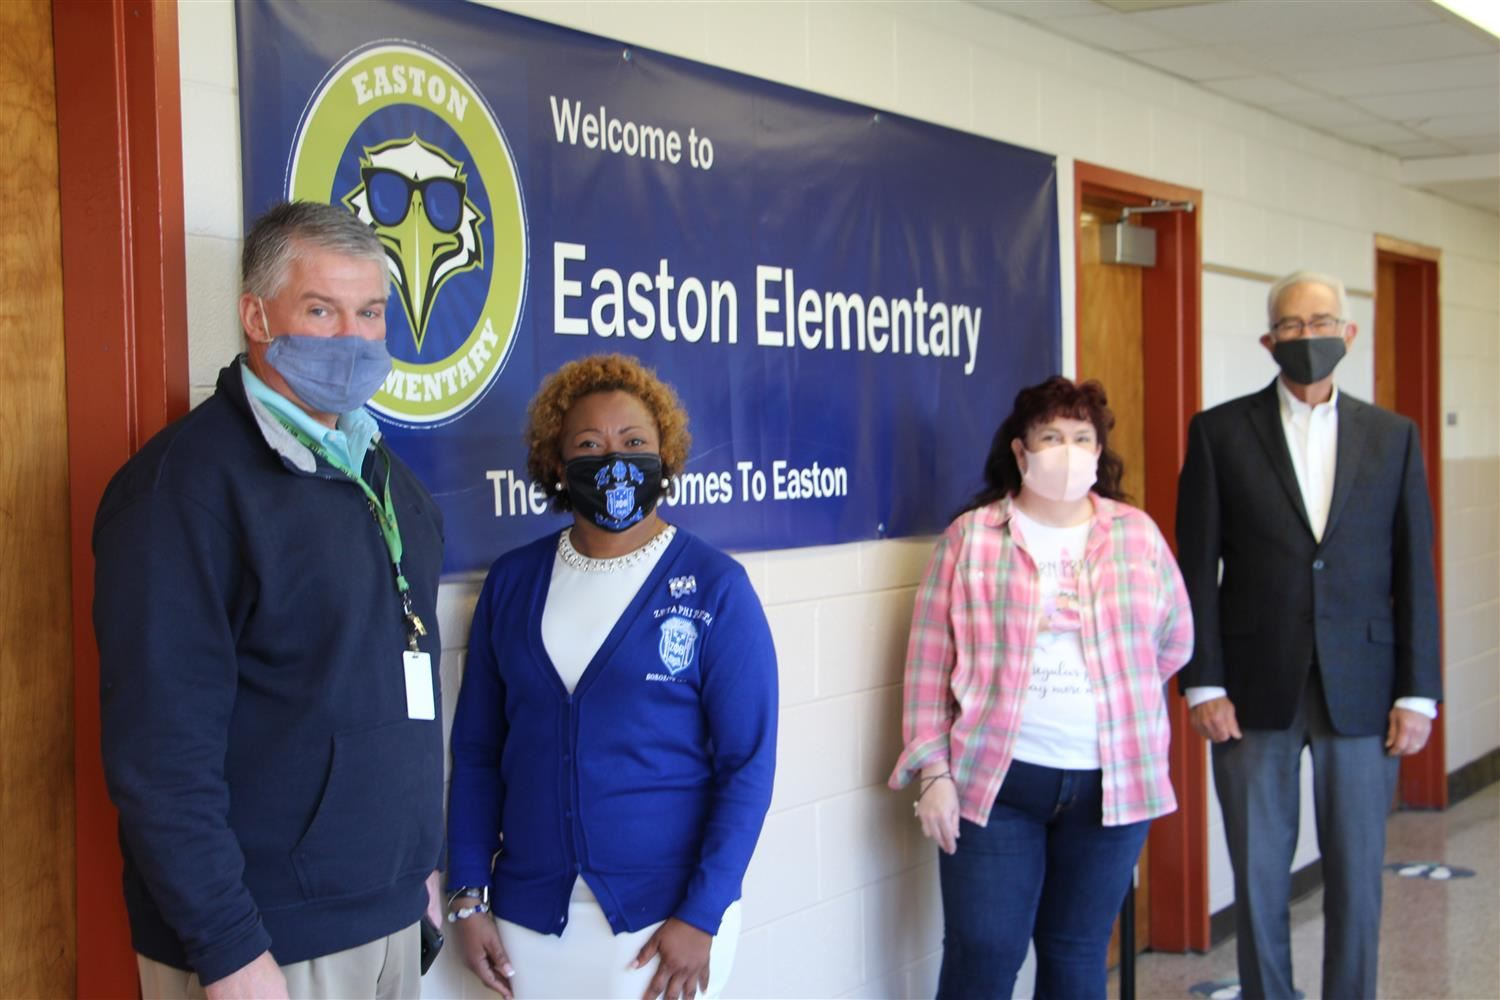 A New Classroom Building & Much More for Easton